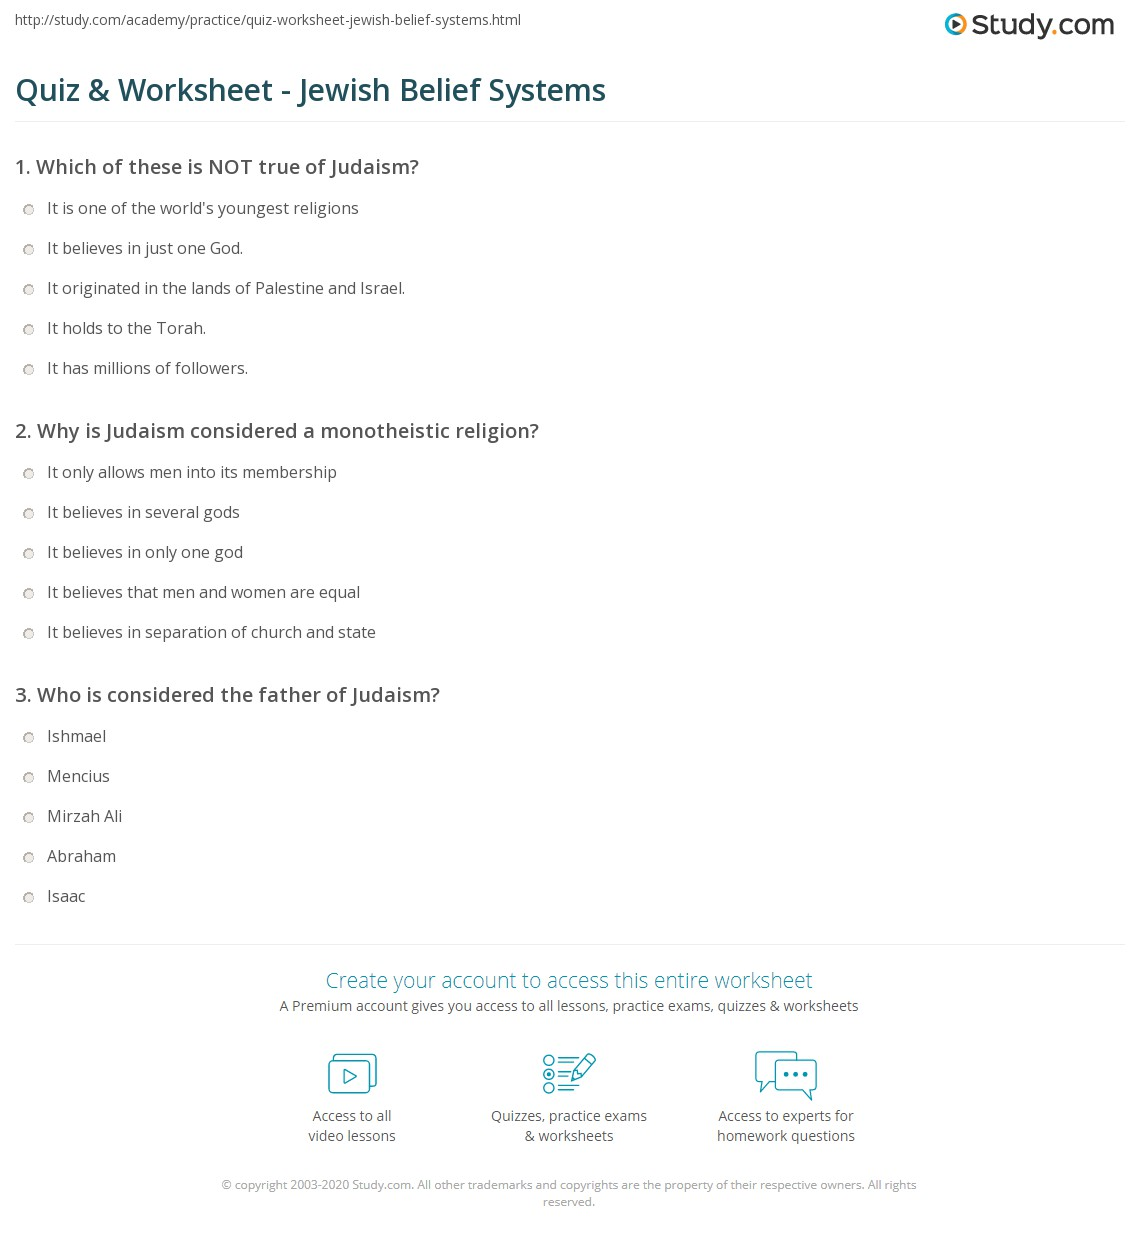 Quiz & Worksheet - Jewish Belief Systems | Study.com